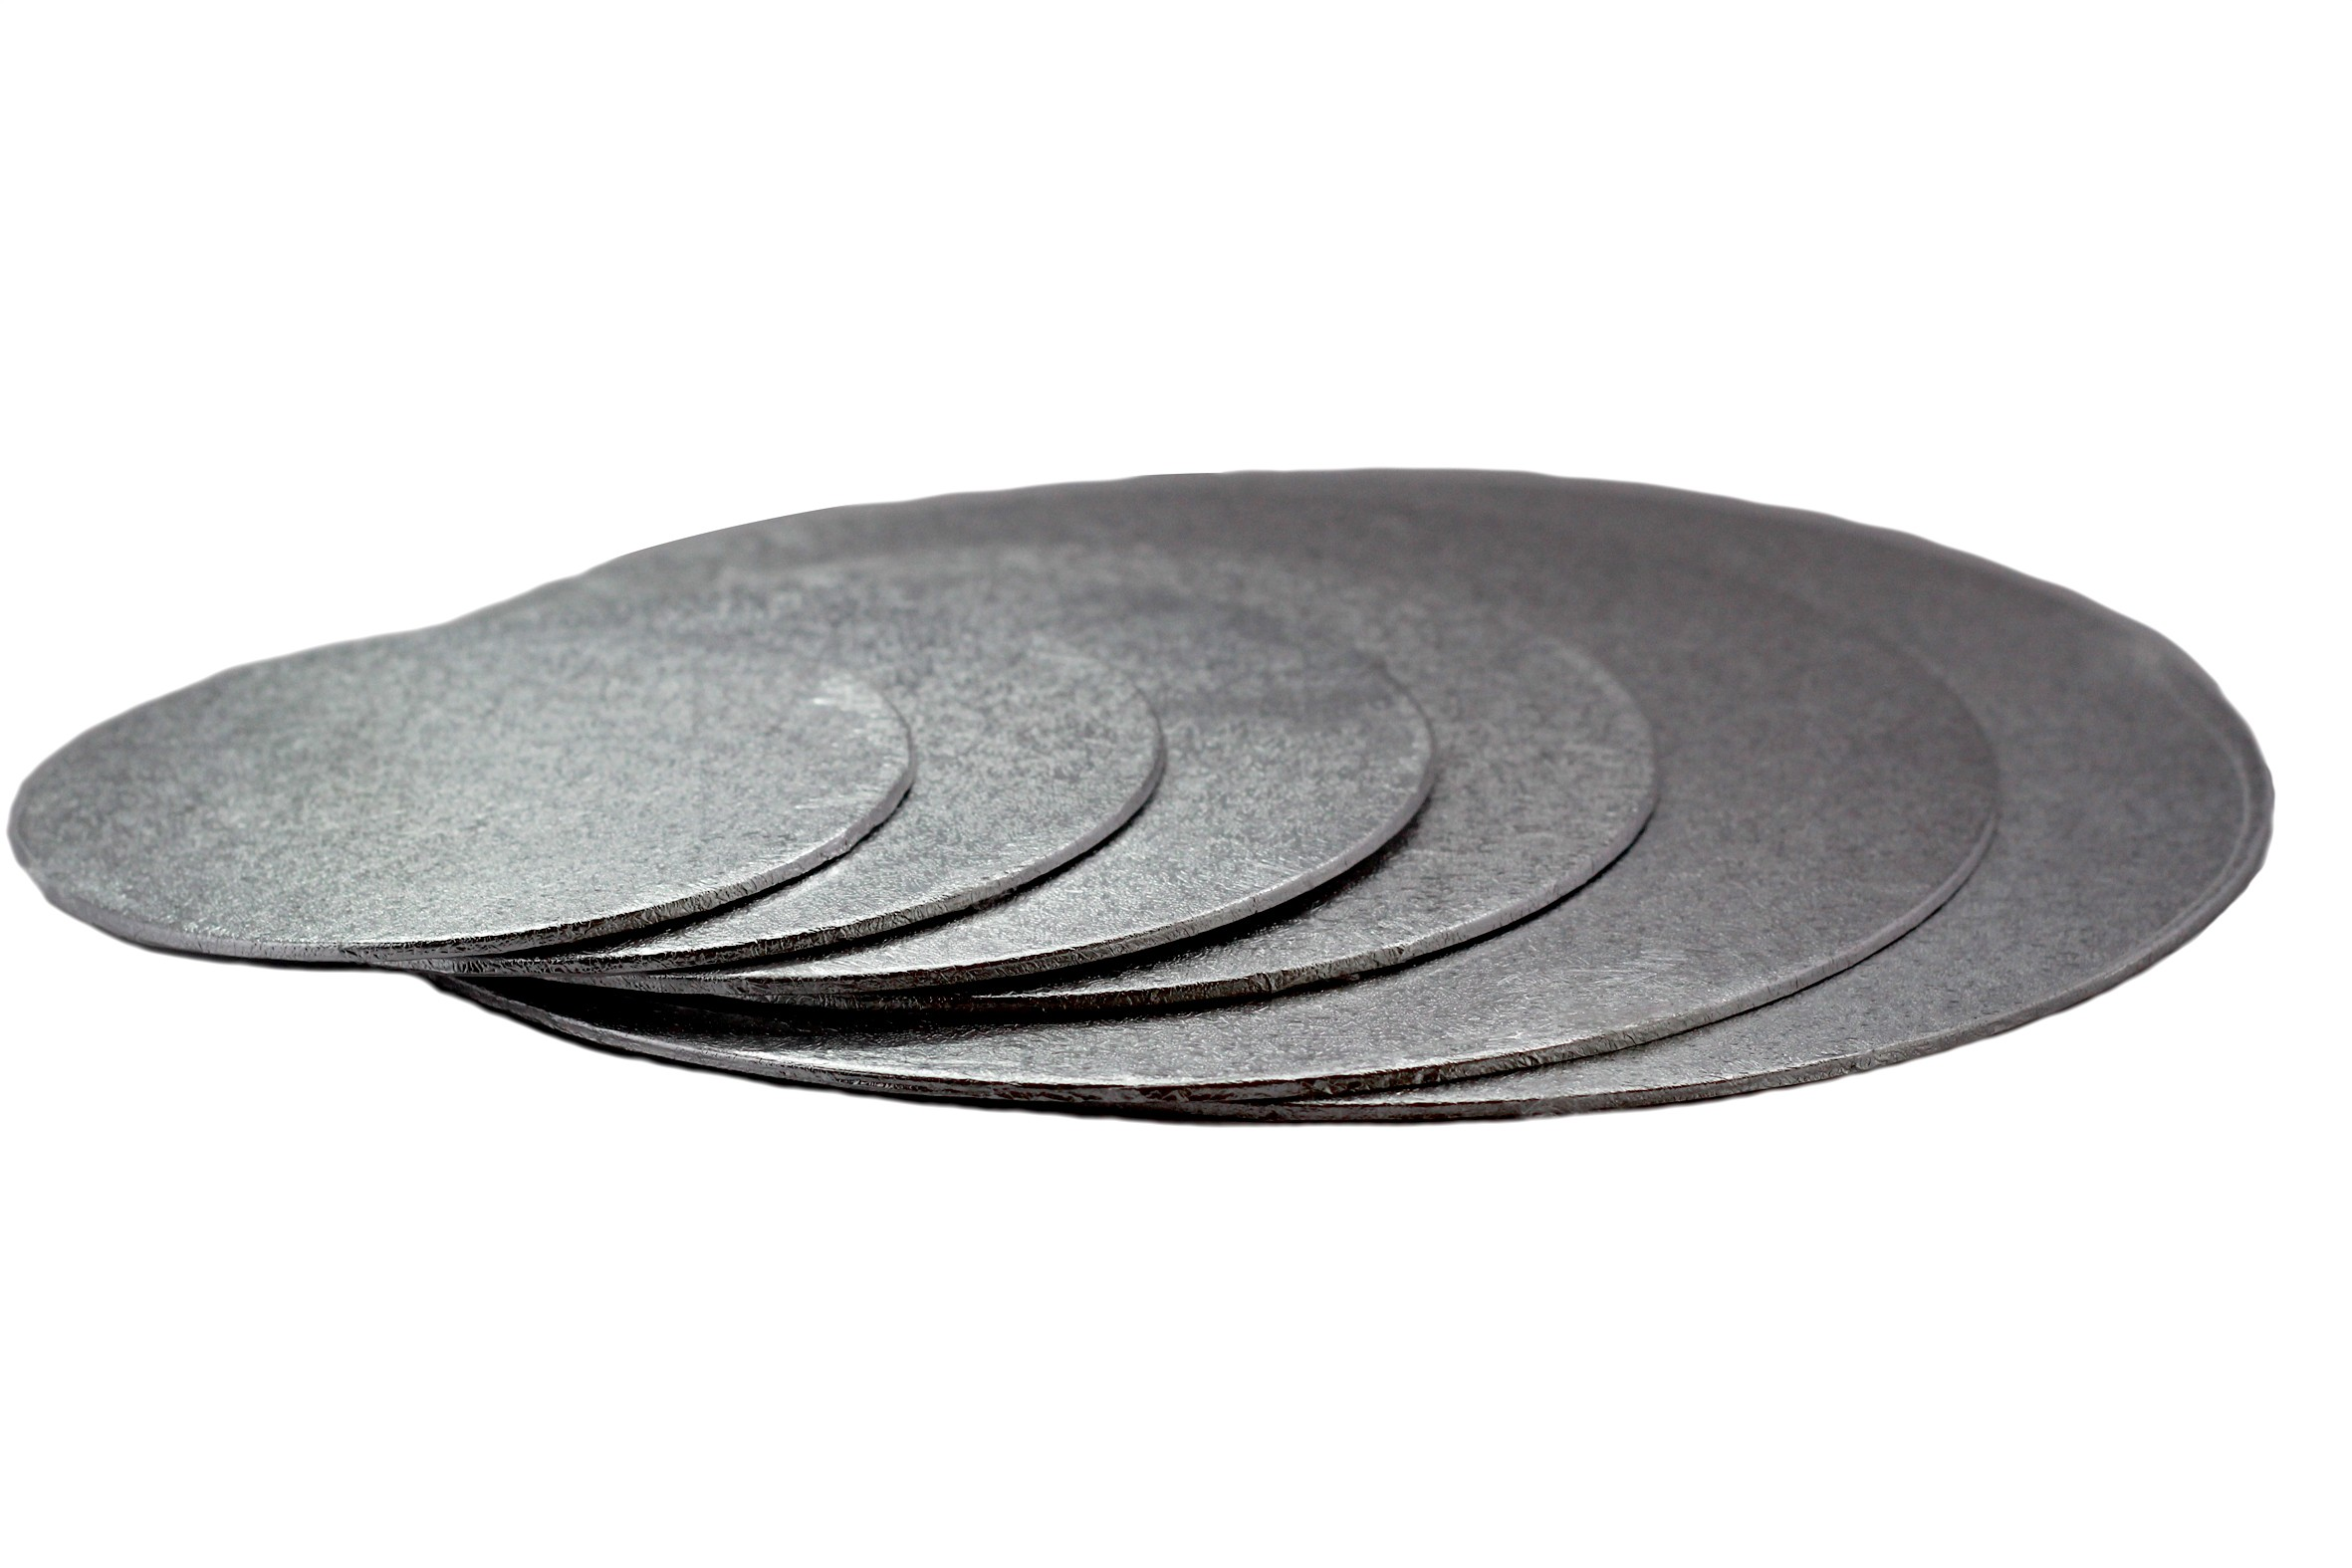 Thin flat sole Diam 5.90 in. For cakes